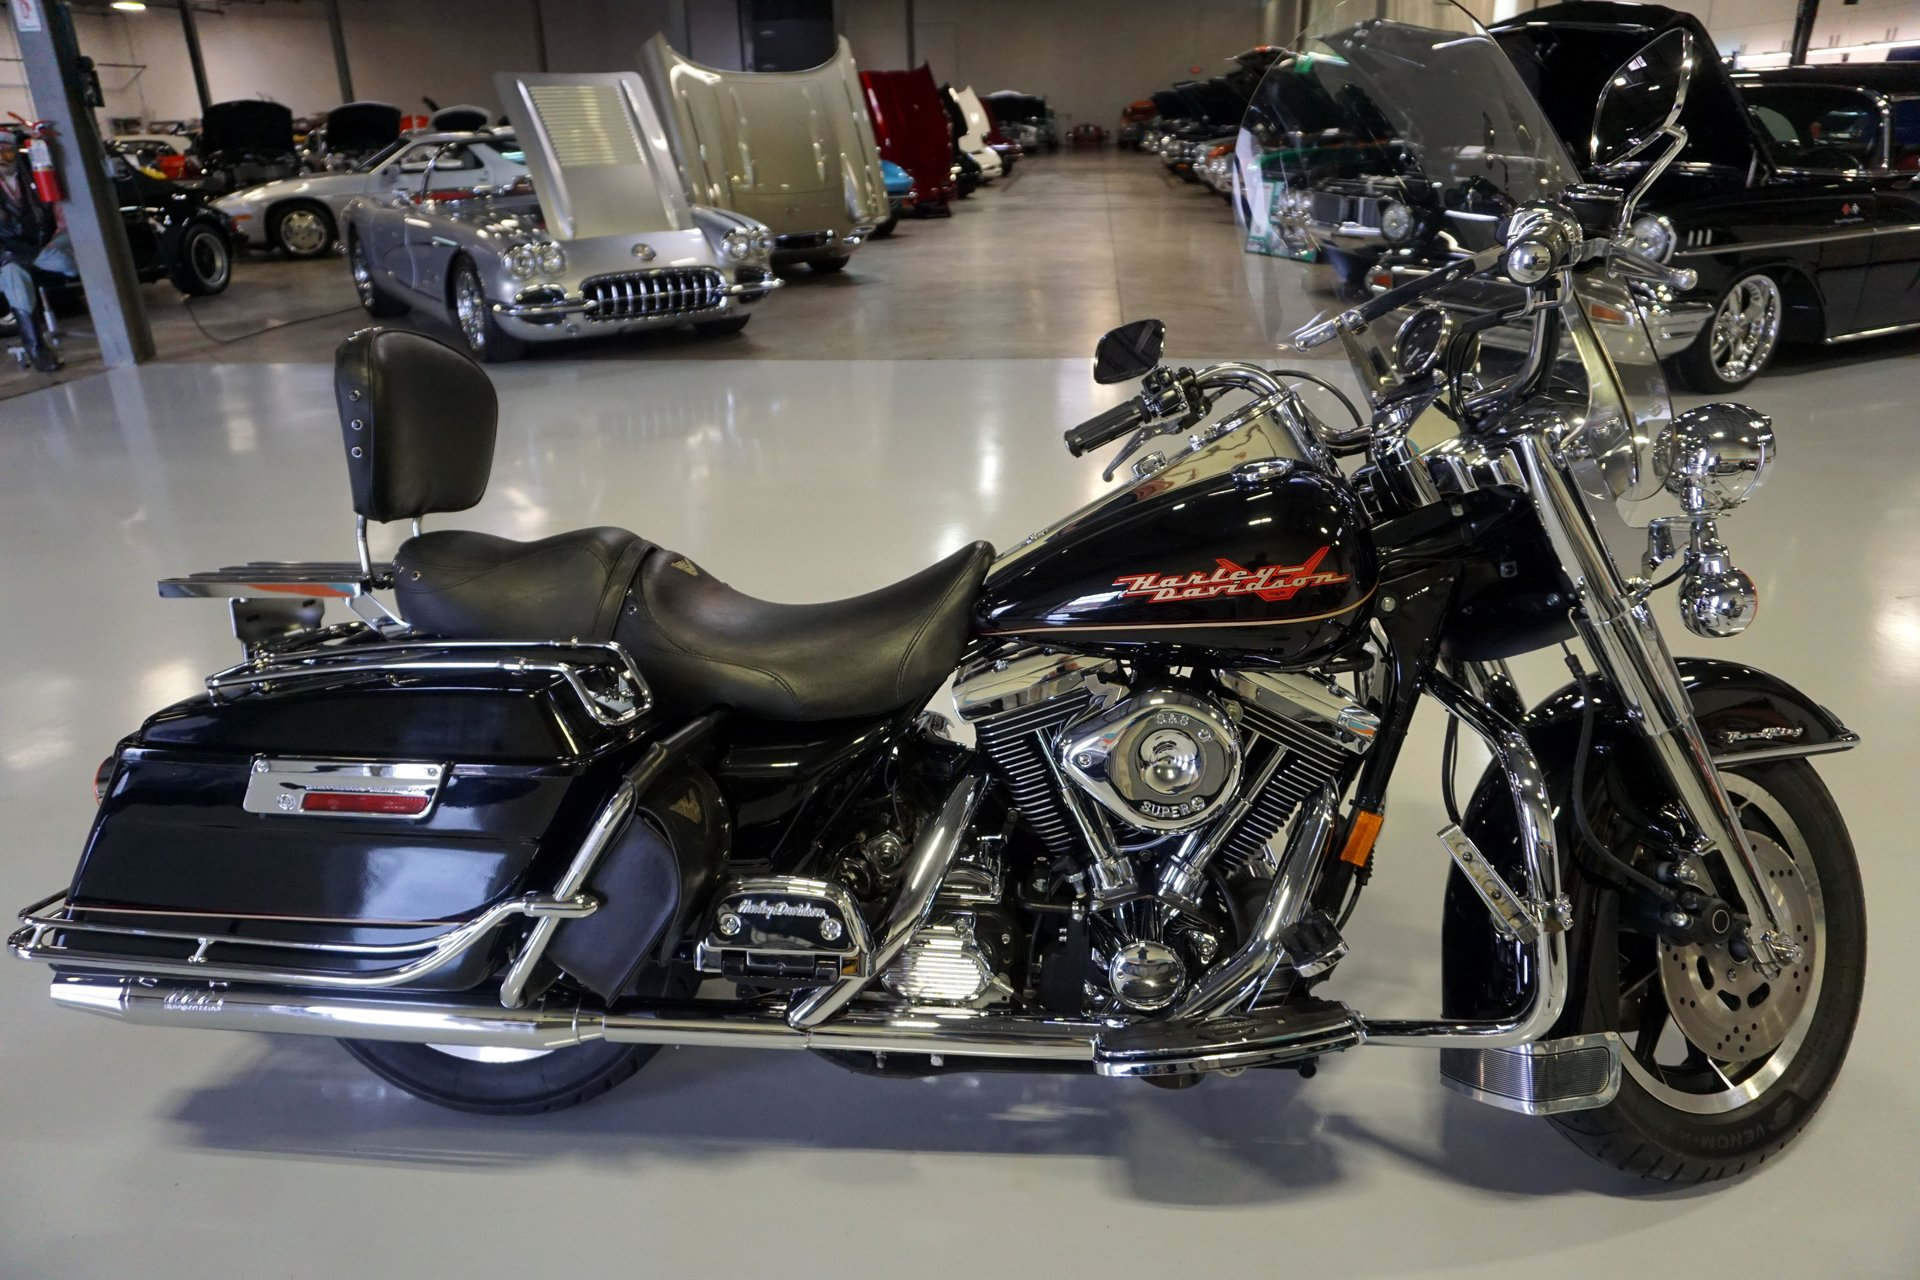 1997 Harley Davidson Road King